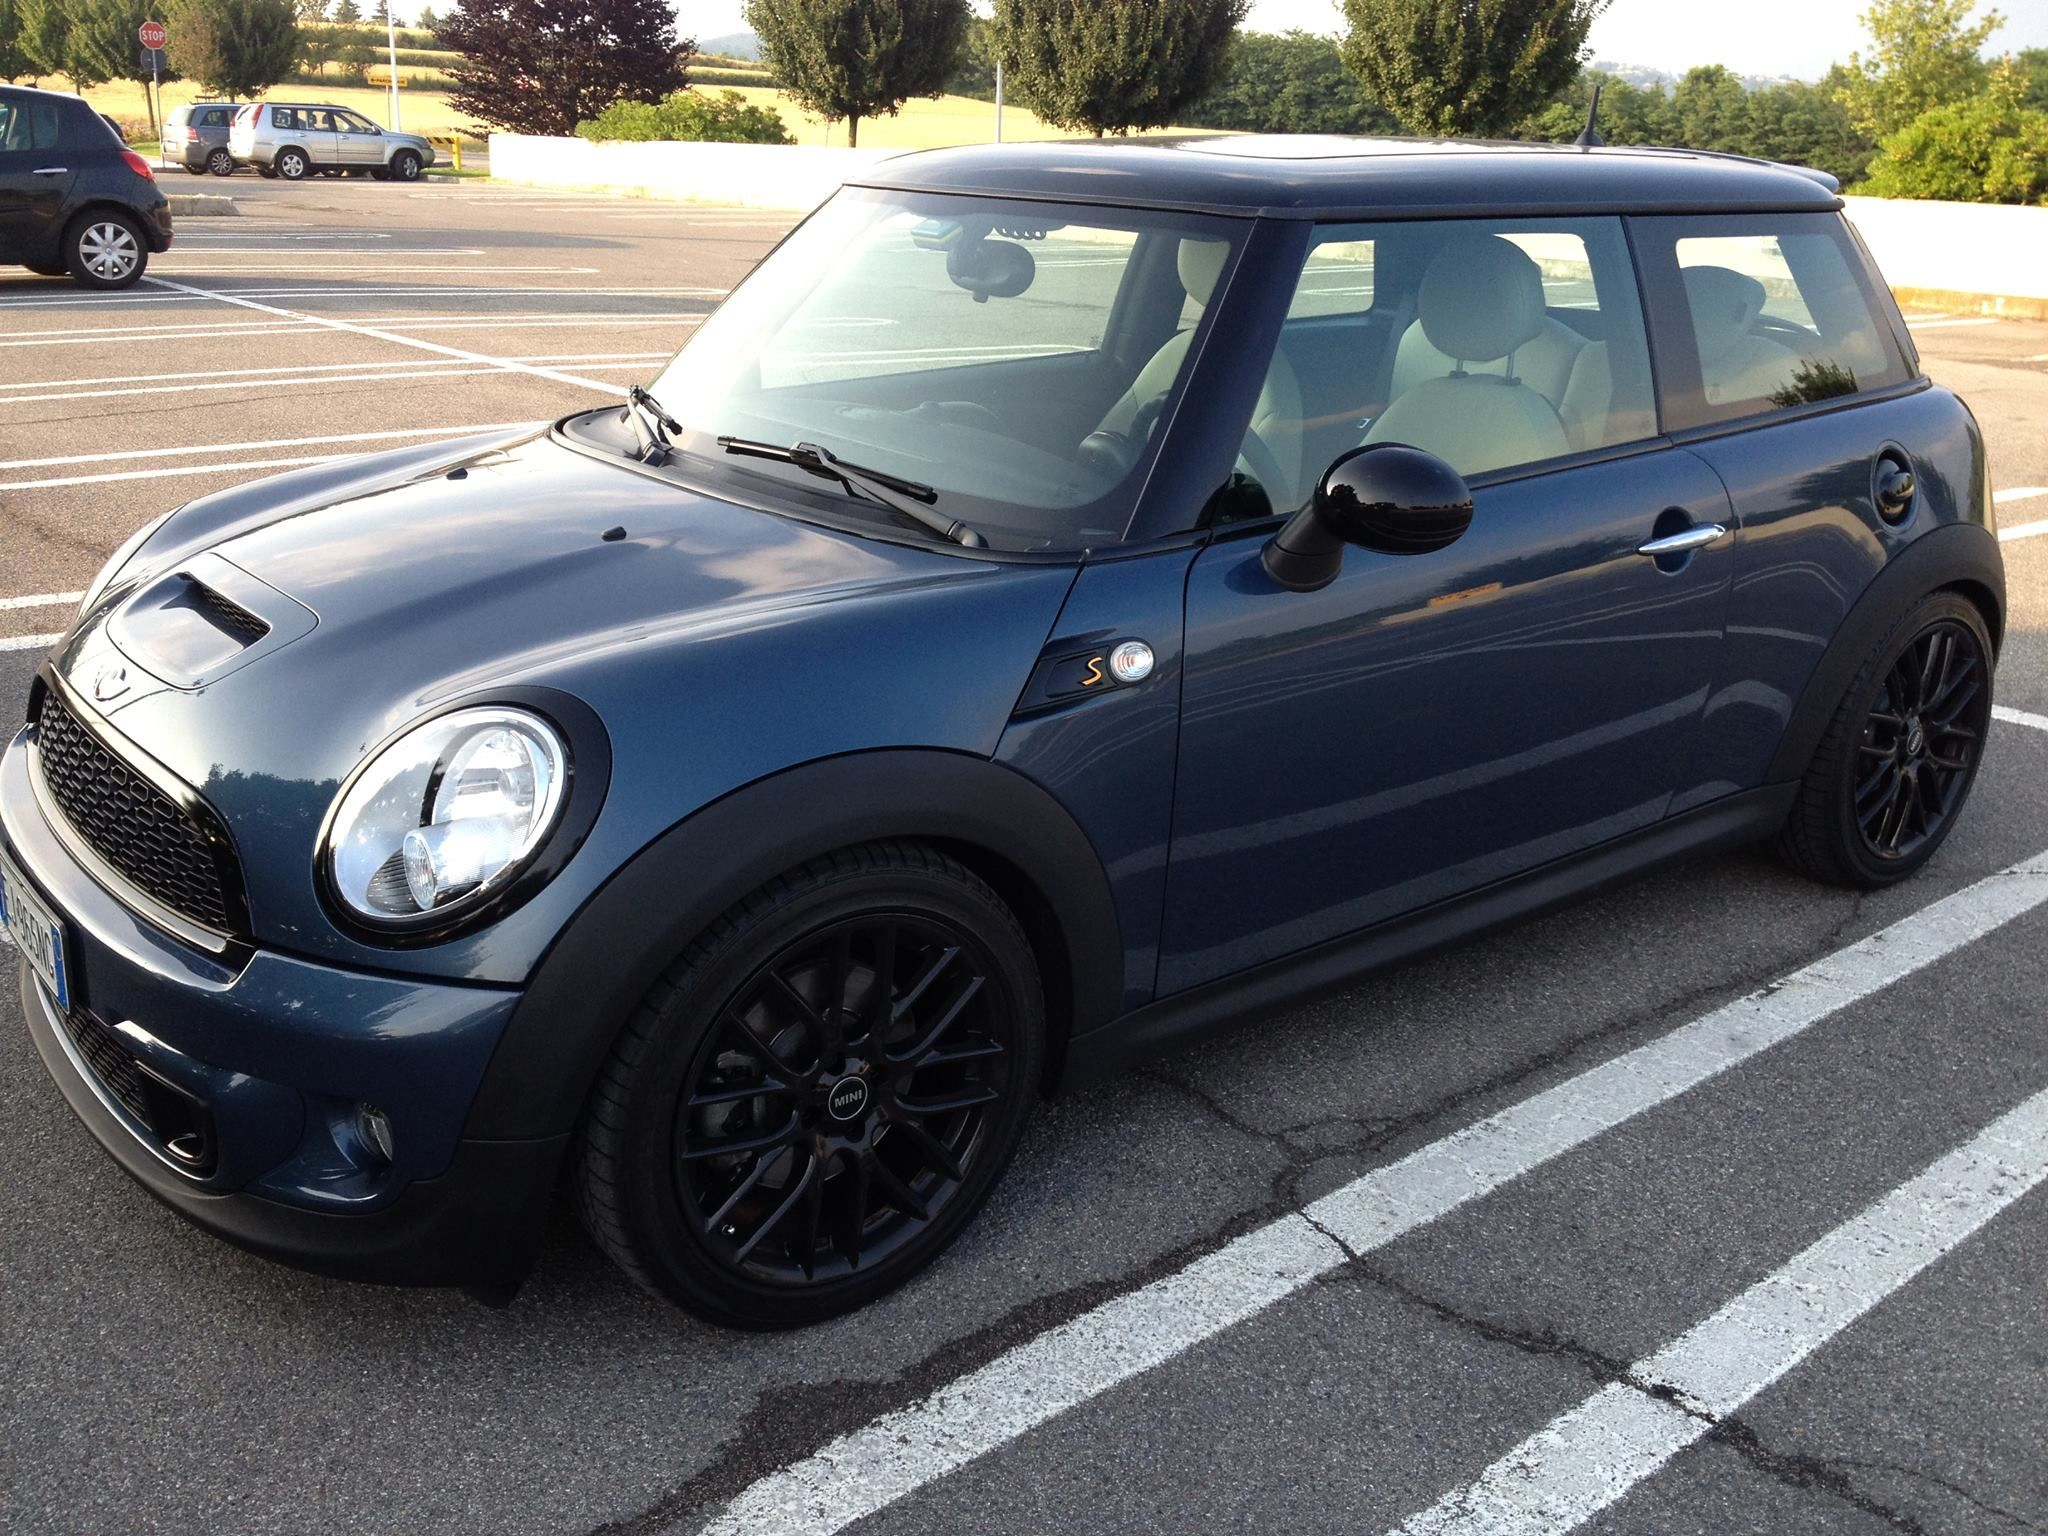 Mino cooper s dark blue elegant black wheels